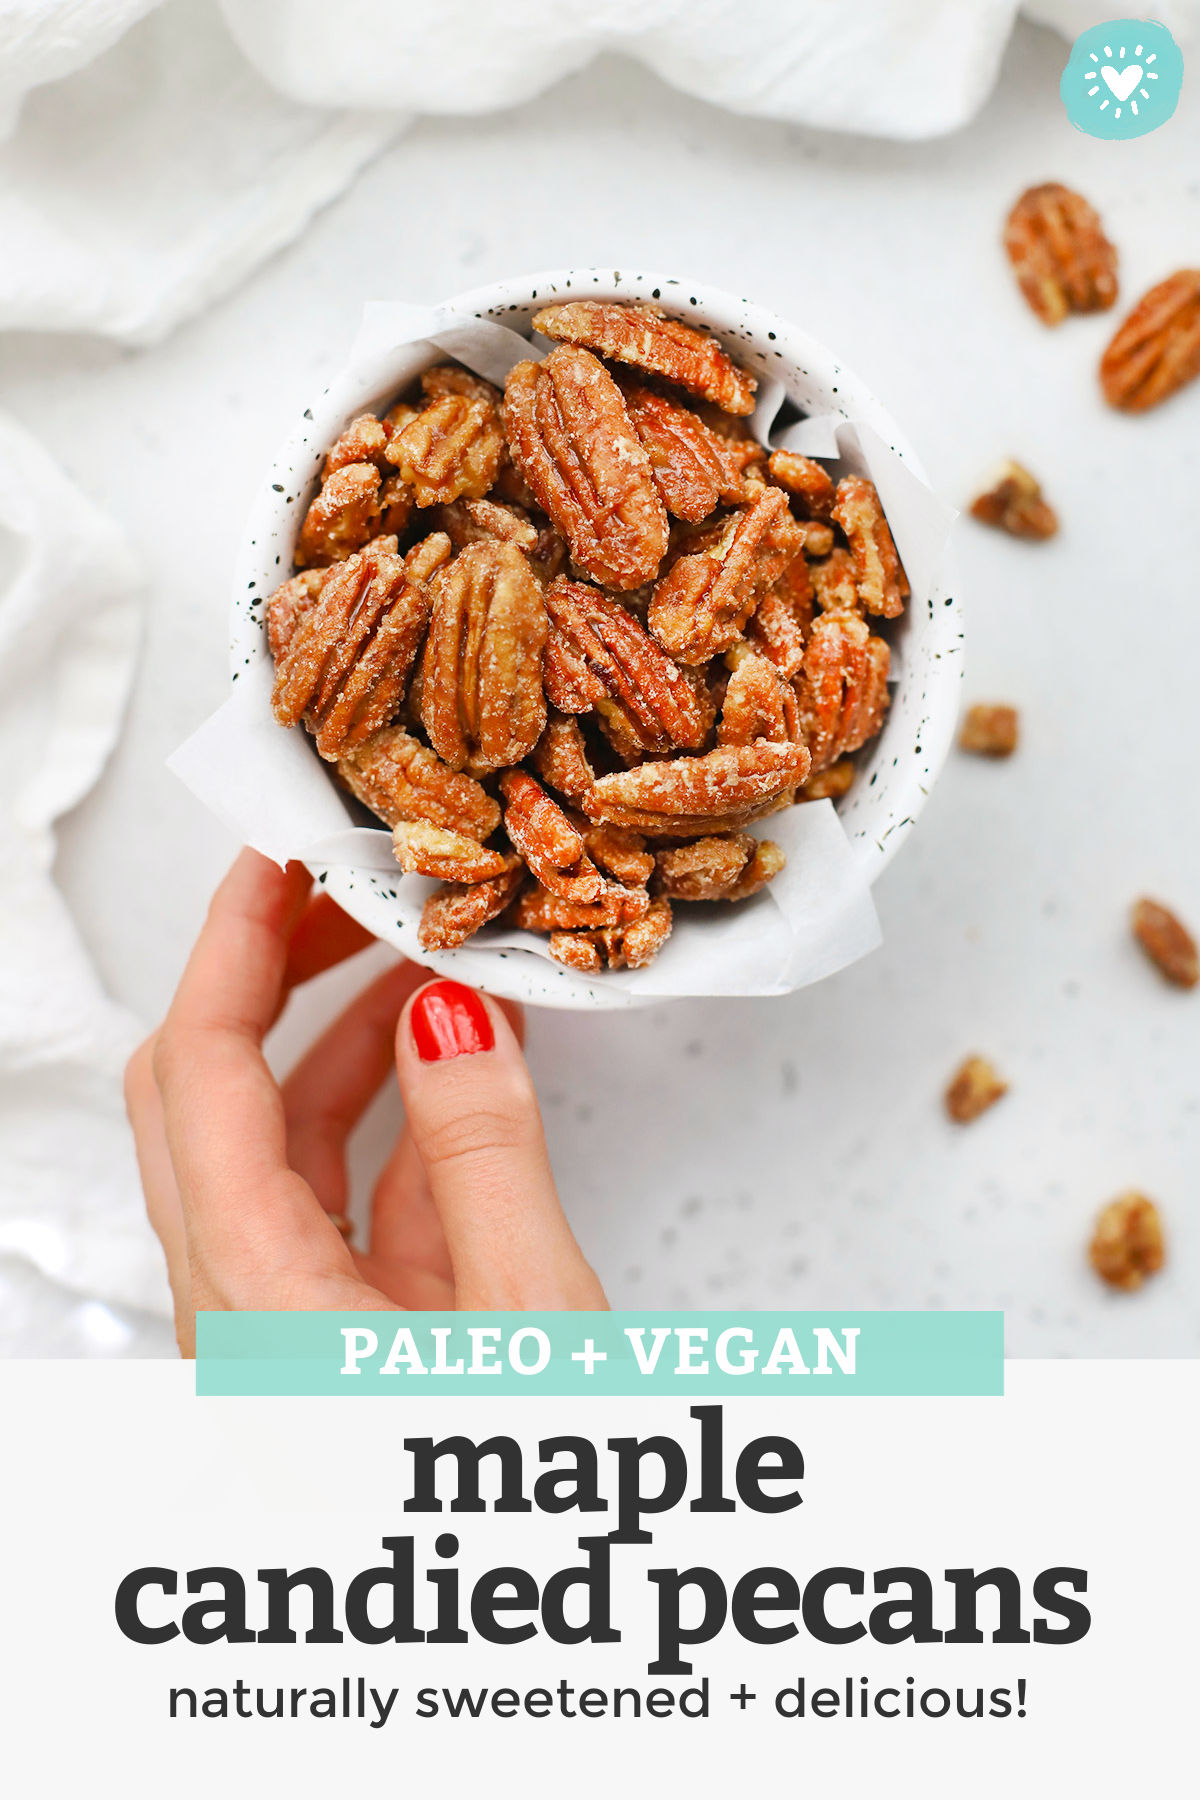 Maple Candied Pecans - These naturally sweetened candied pecans are PERFECT for snacking, holiday gifting, or topping your favorite salad. You'll love them as much as we do! Don't forget the free printable gift tag for gifting! (Paleo + Vegan) // Paleo Candied Pecans // Healthy Candied Pecans // Edible Gift // Holiday Gift // Printable Gift Tag // Cinnamon Candied Pecans #candiedpecans #ediblegift #holidaygift #gifttag